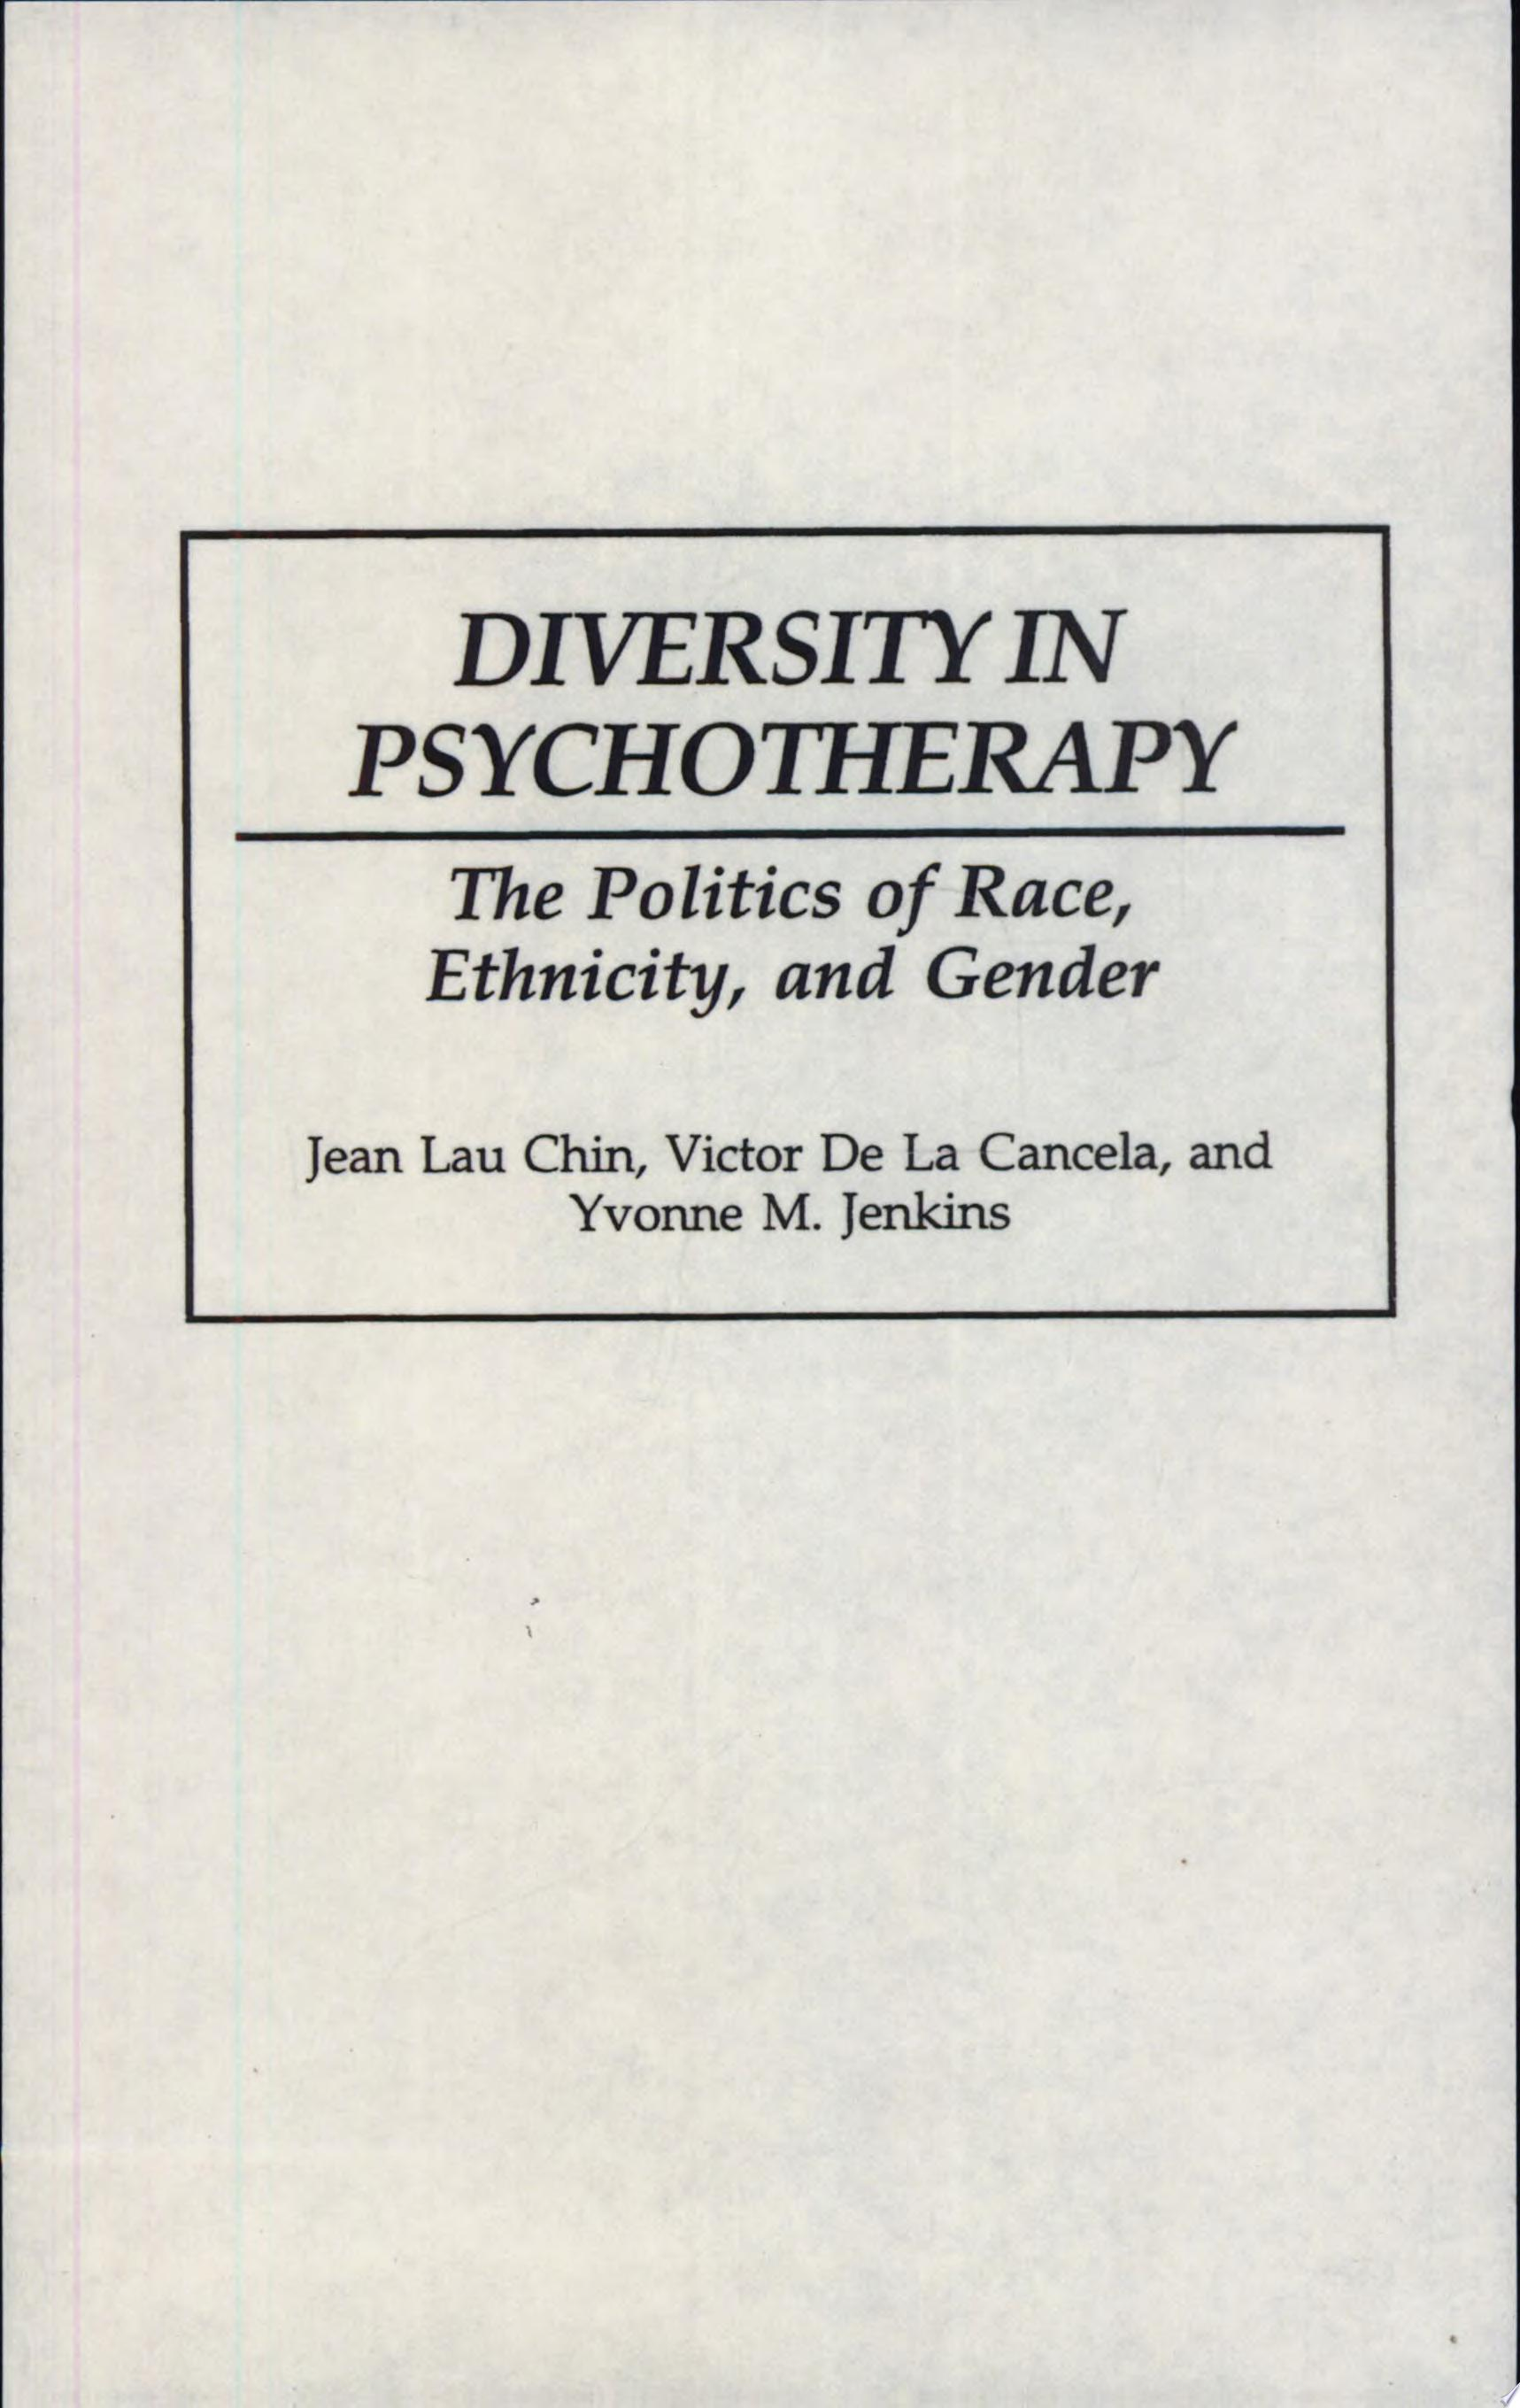 Diversity in Psychotherapy